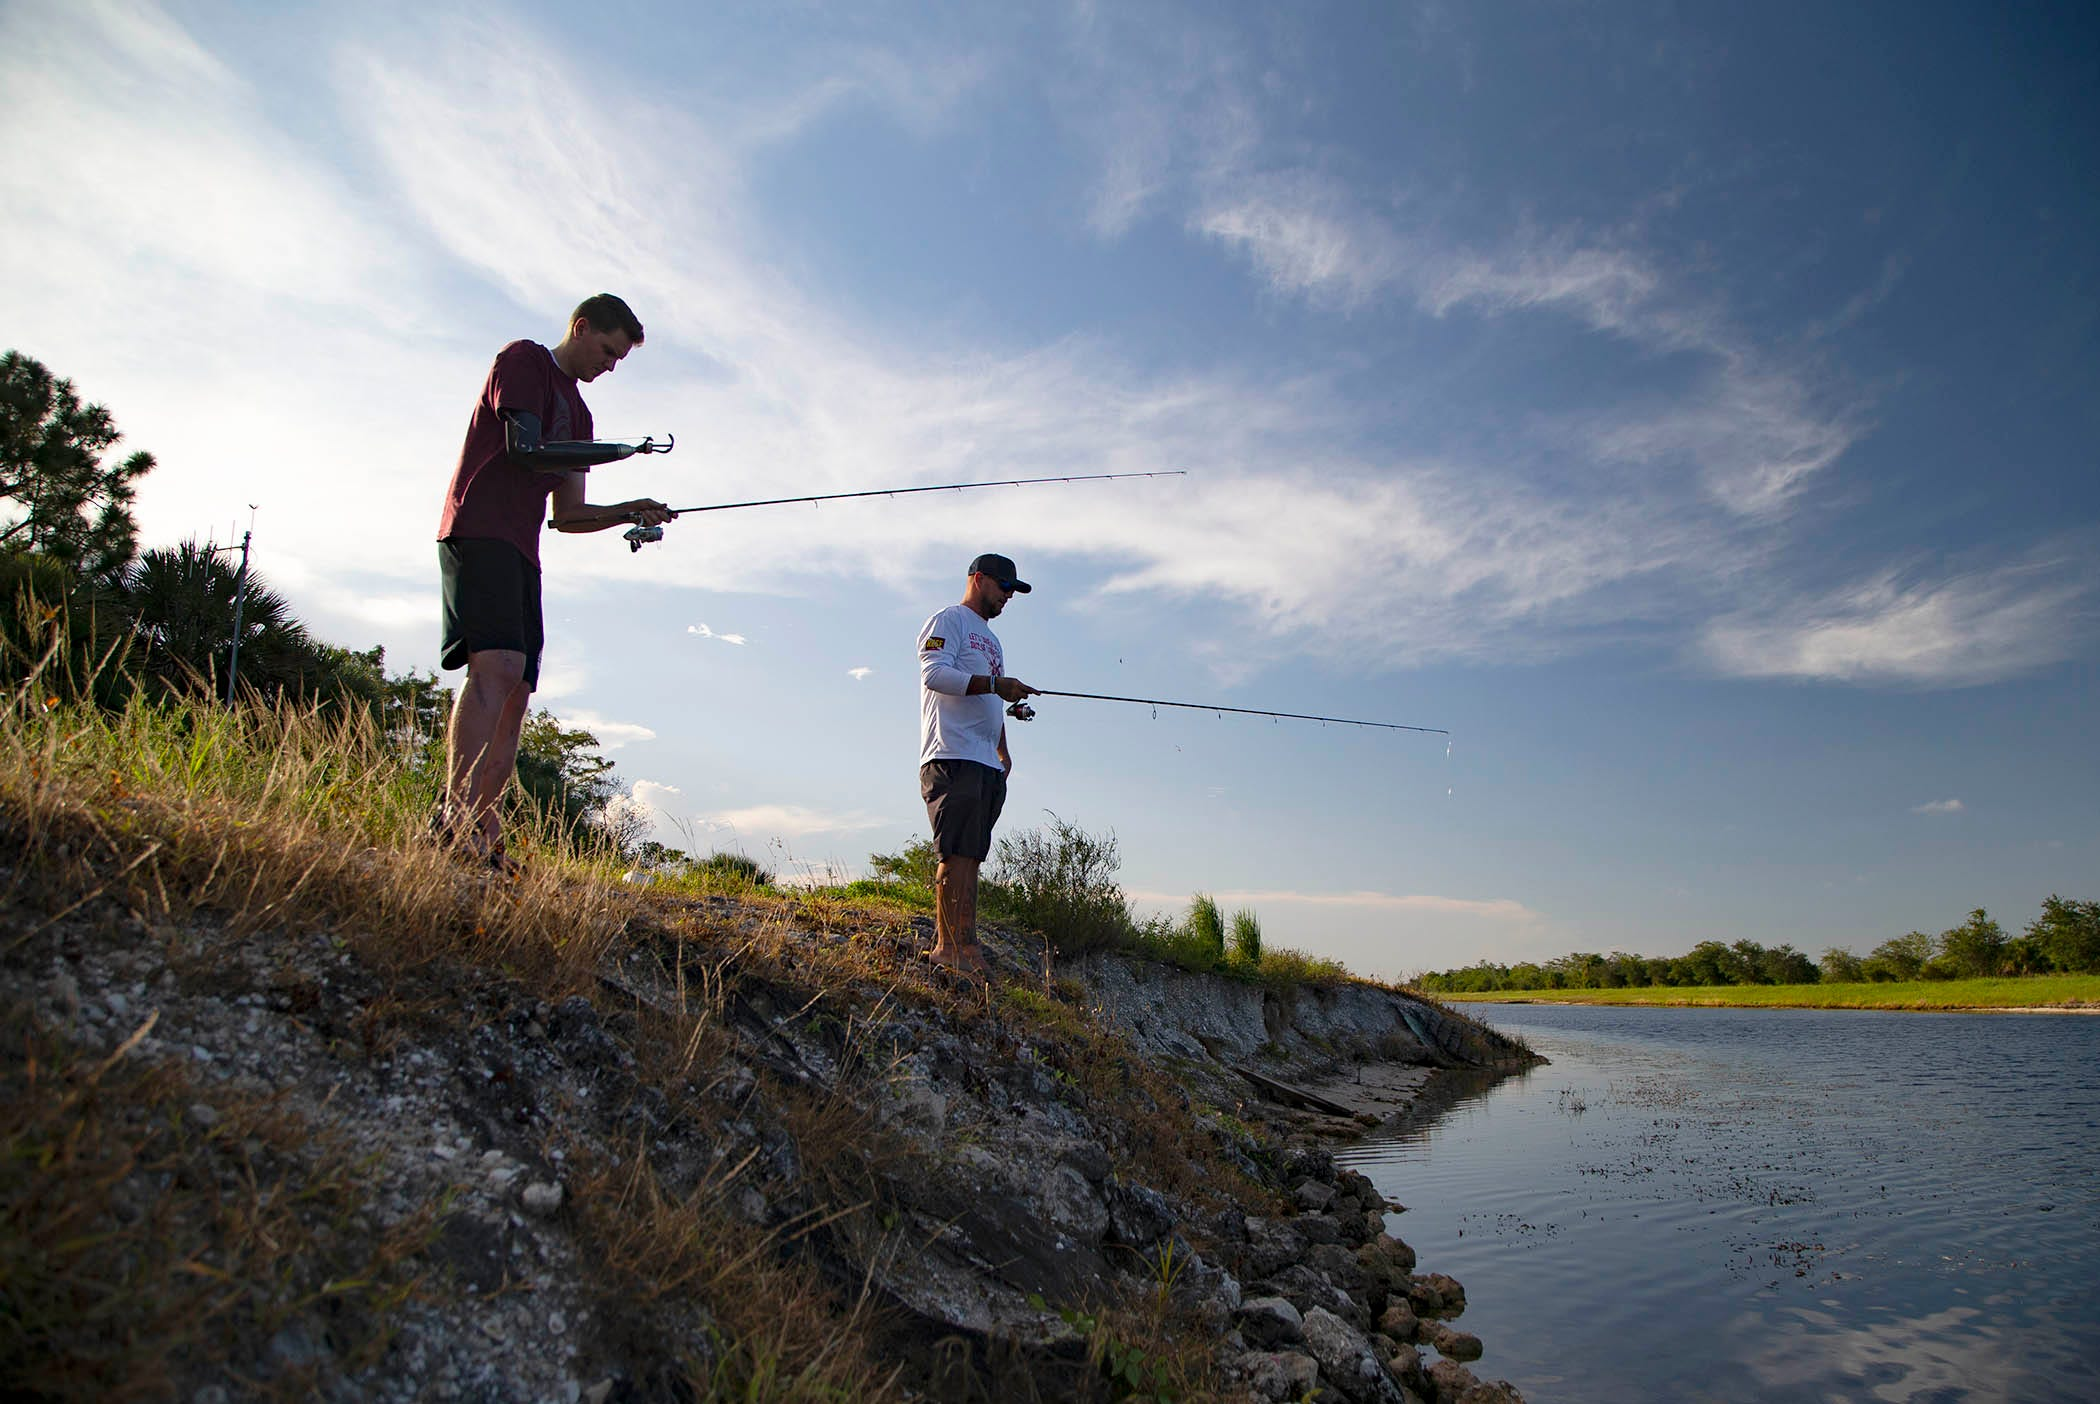 Carter Viss fishes on Aug. 7 with his friend and rescuer, Andy Earl, at Sandhill Crane Access Park outside of Palm Beach Gardens.